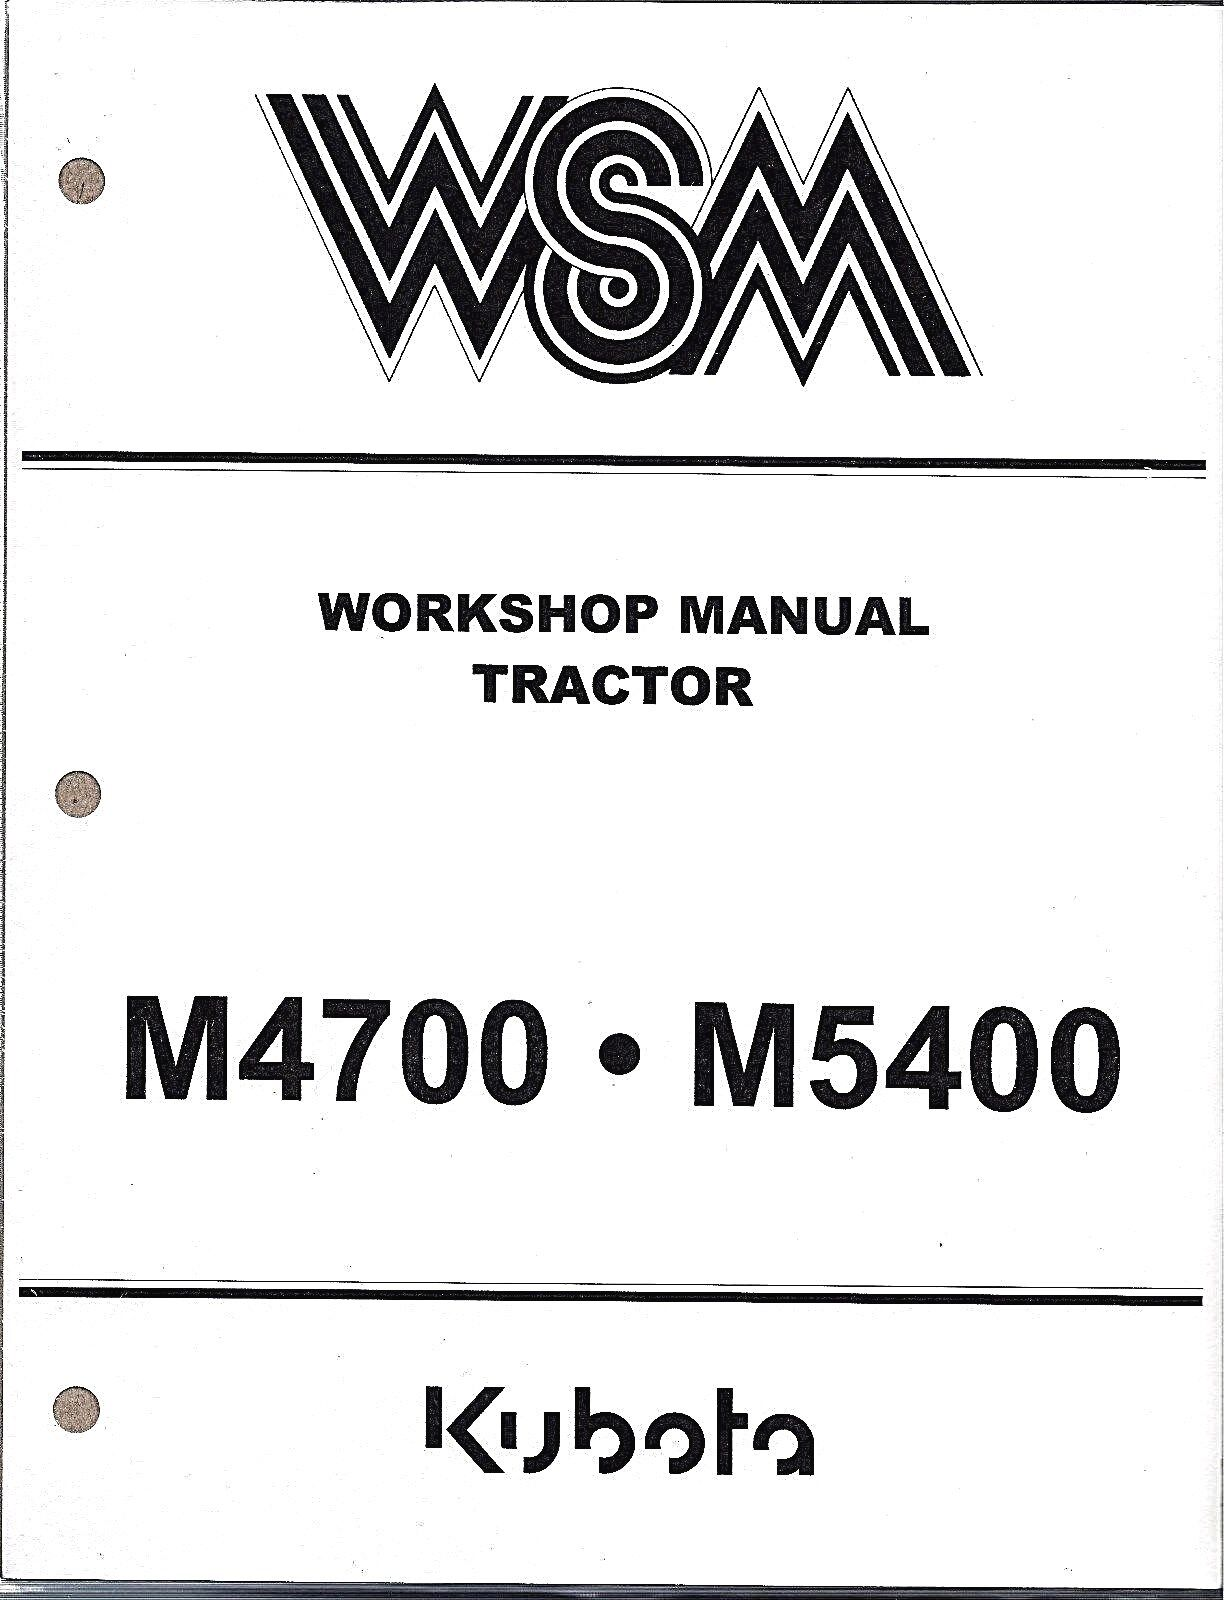 Kubota M4700 M5400 Tractor Workshop Service Repair Manual 97897-11793 1 of  1Only 1 available ...